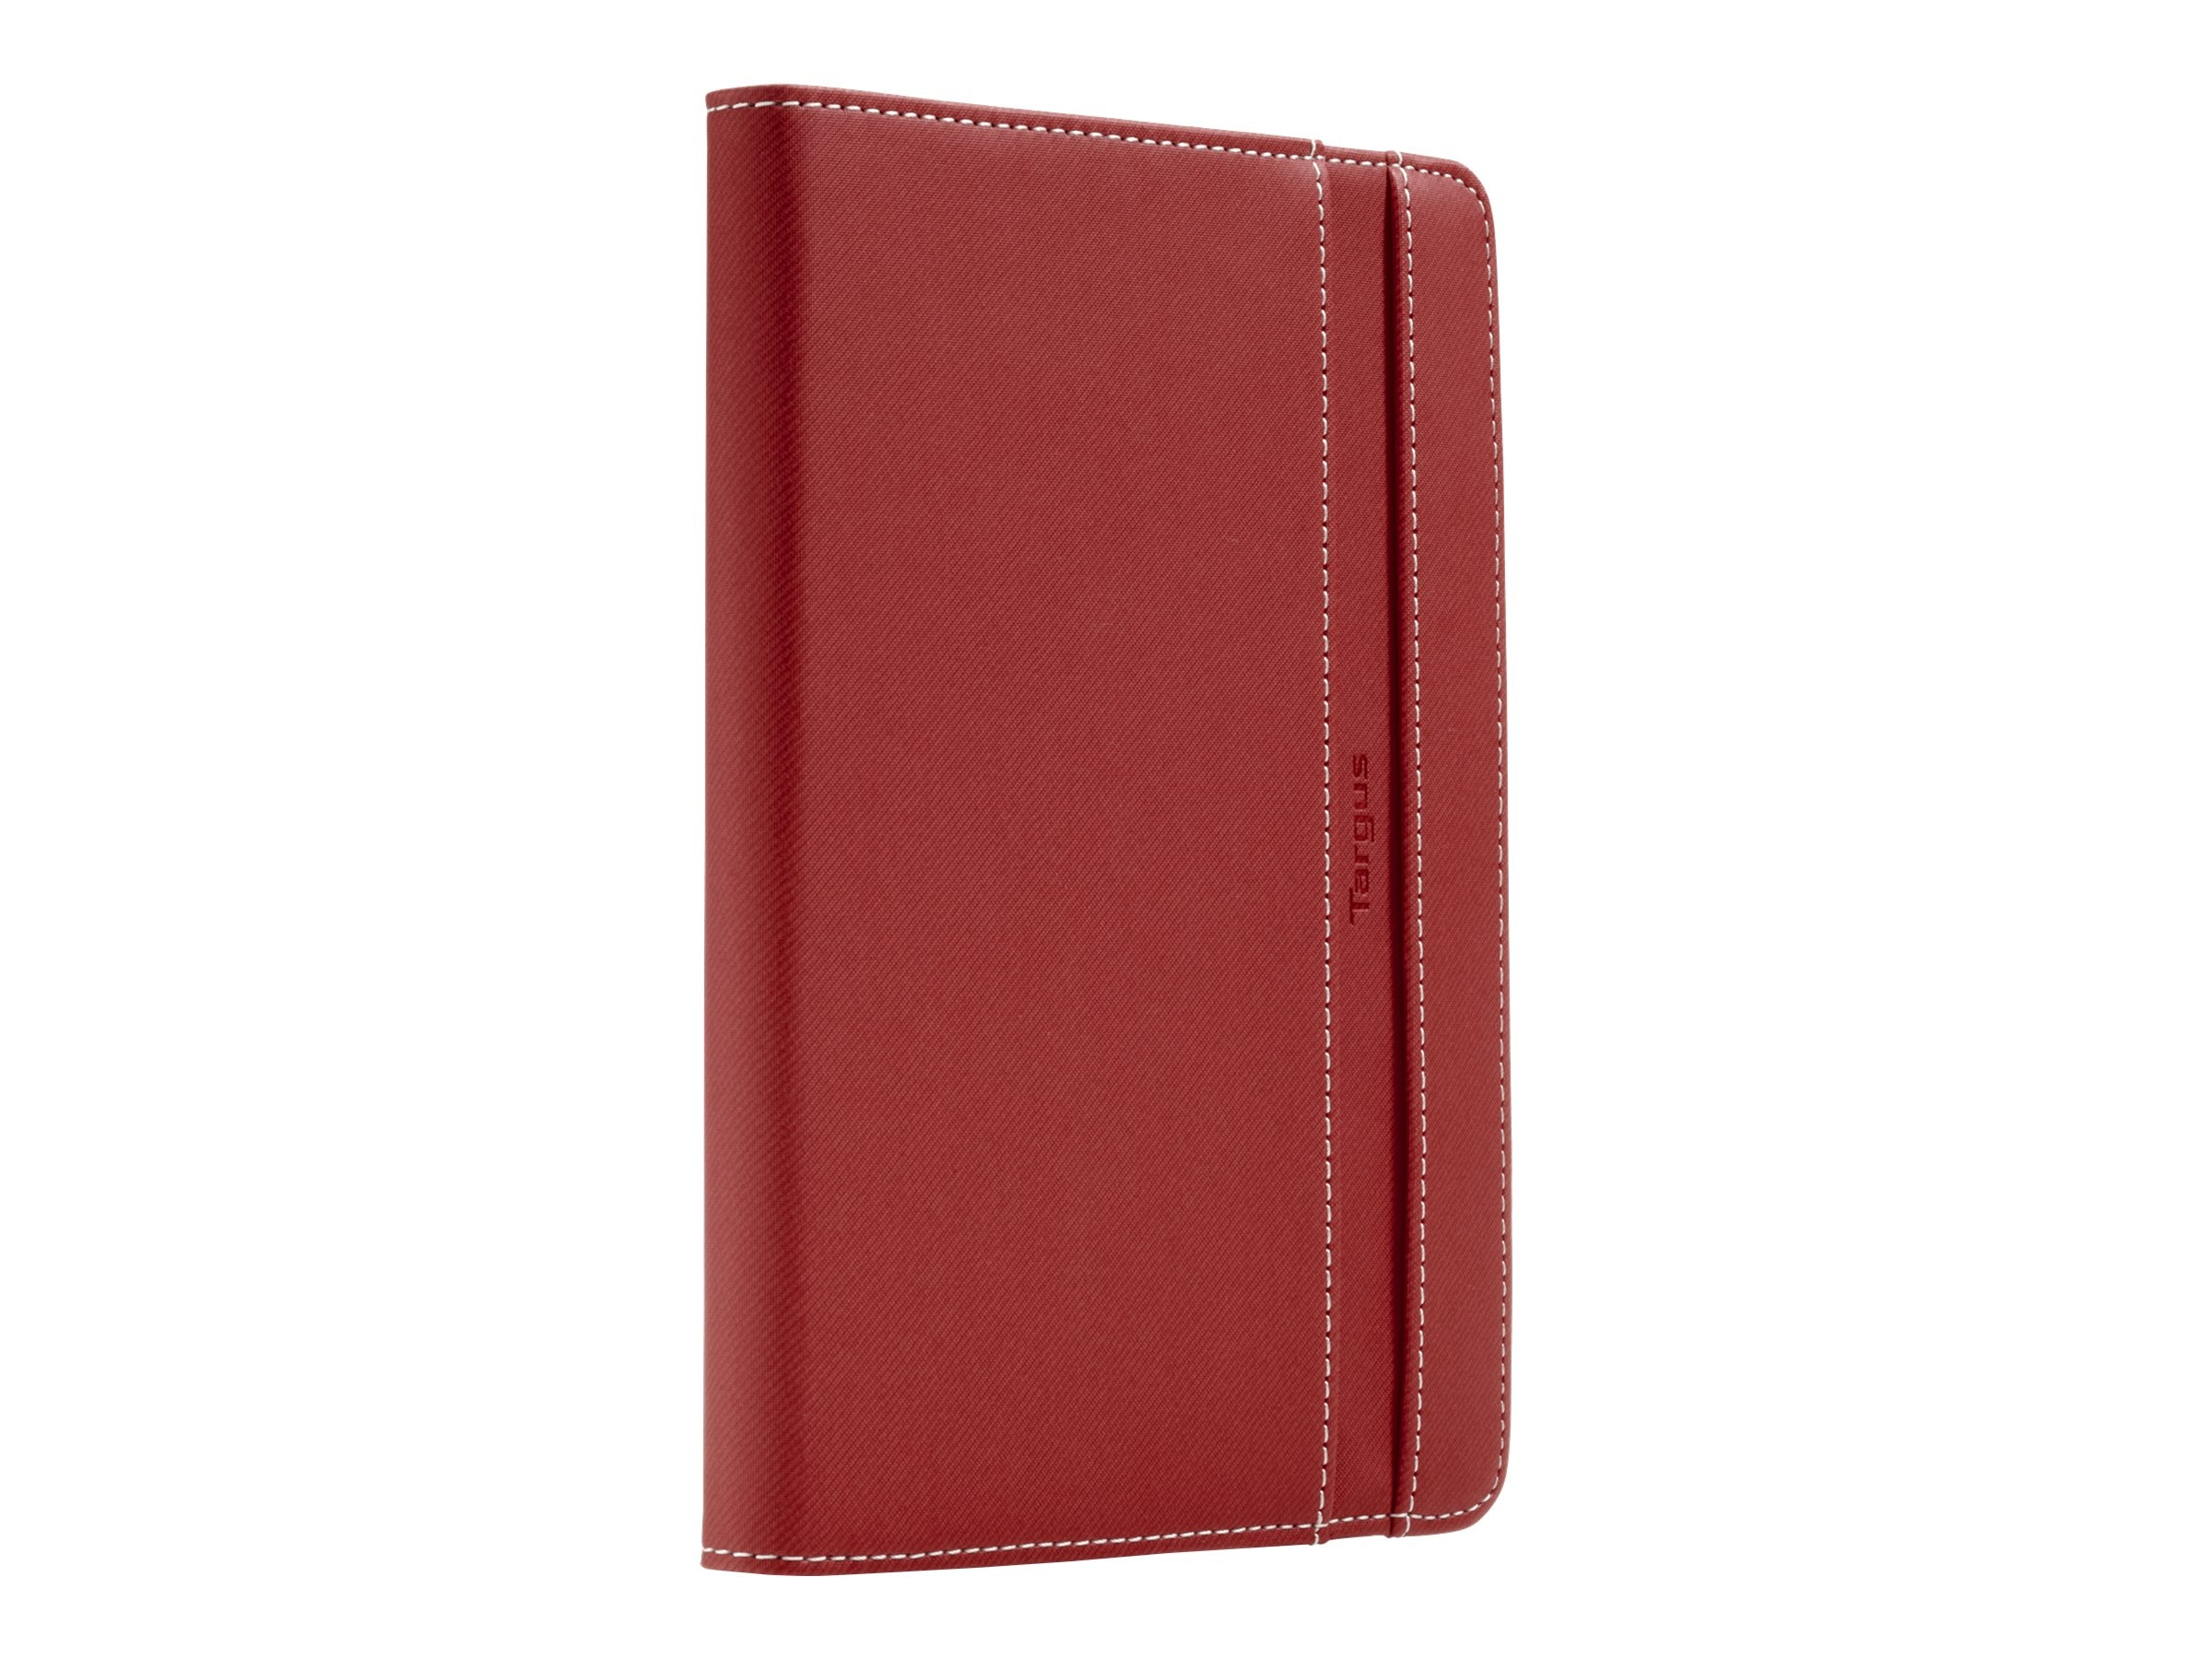 Targus Kickstand Red Mini Case for iPad, THZ18401US